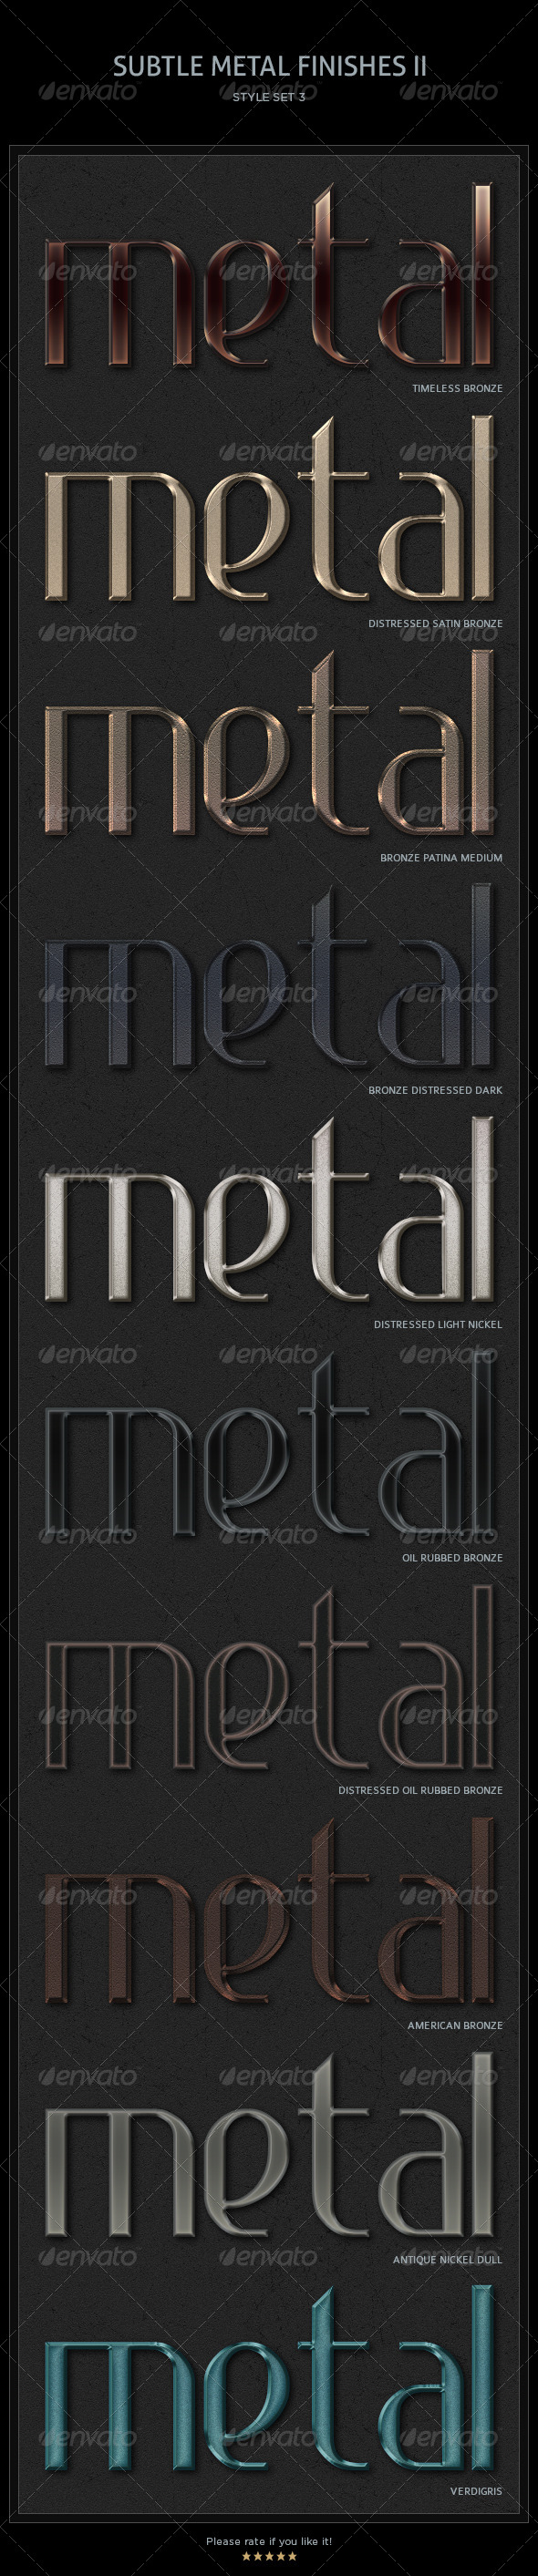 GraphicRiver 10 Subtle Metal Finishes II Text Styles 4571125